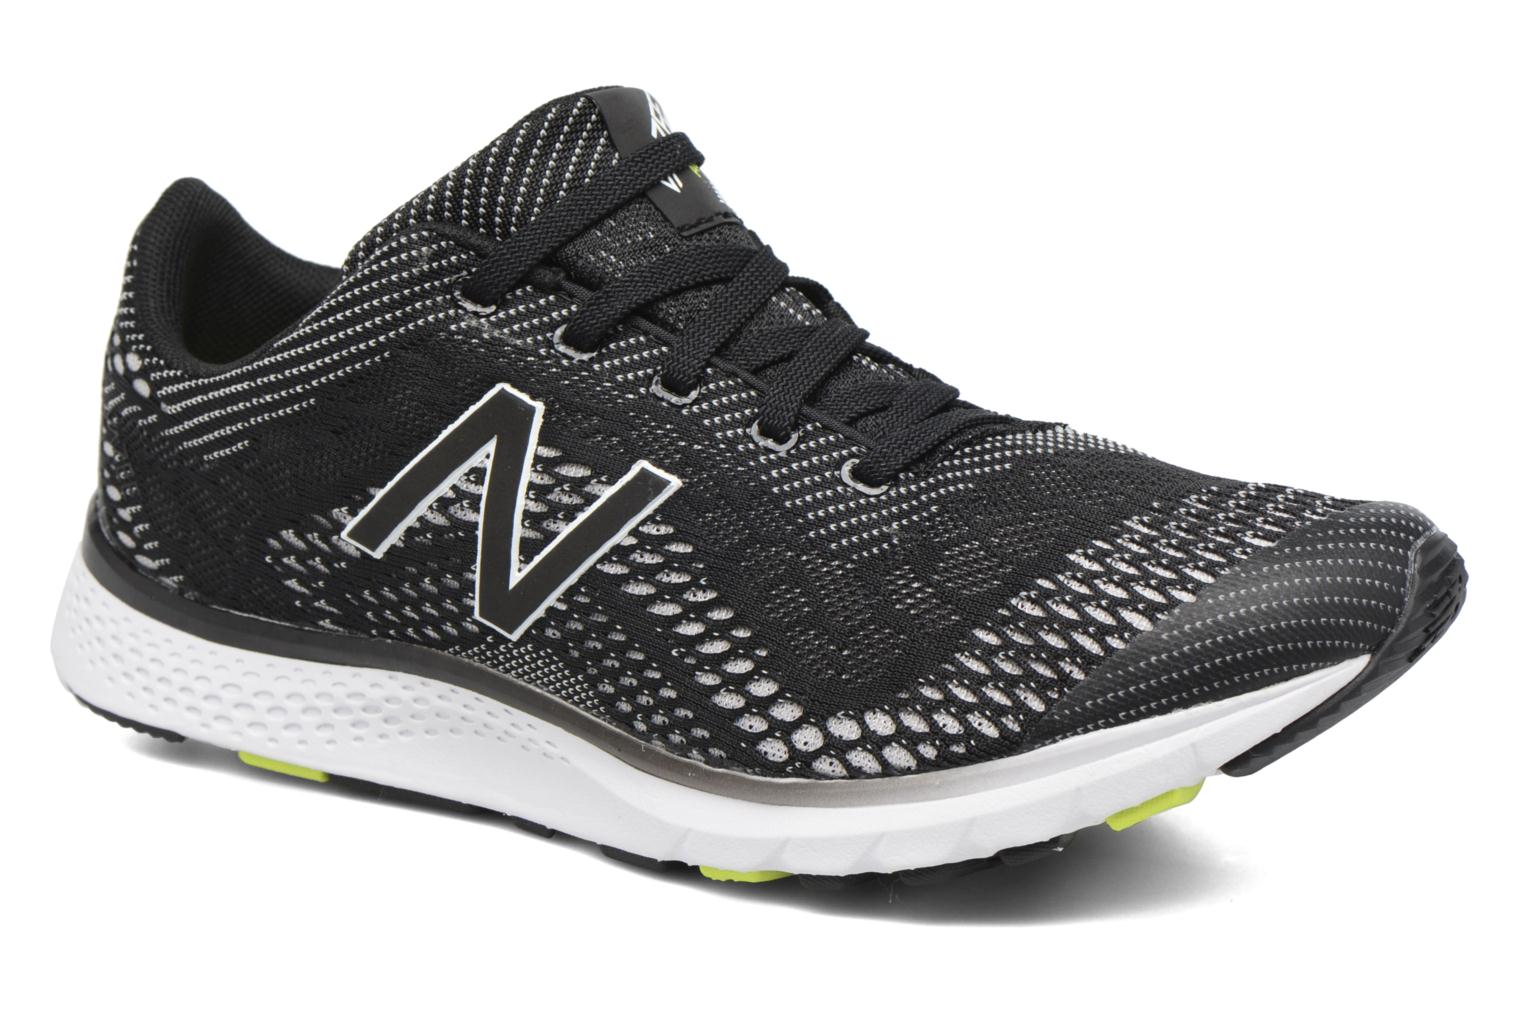 Marques Chaussure femme New Balance femme WXAGL BW2 Black/Lime Glo